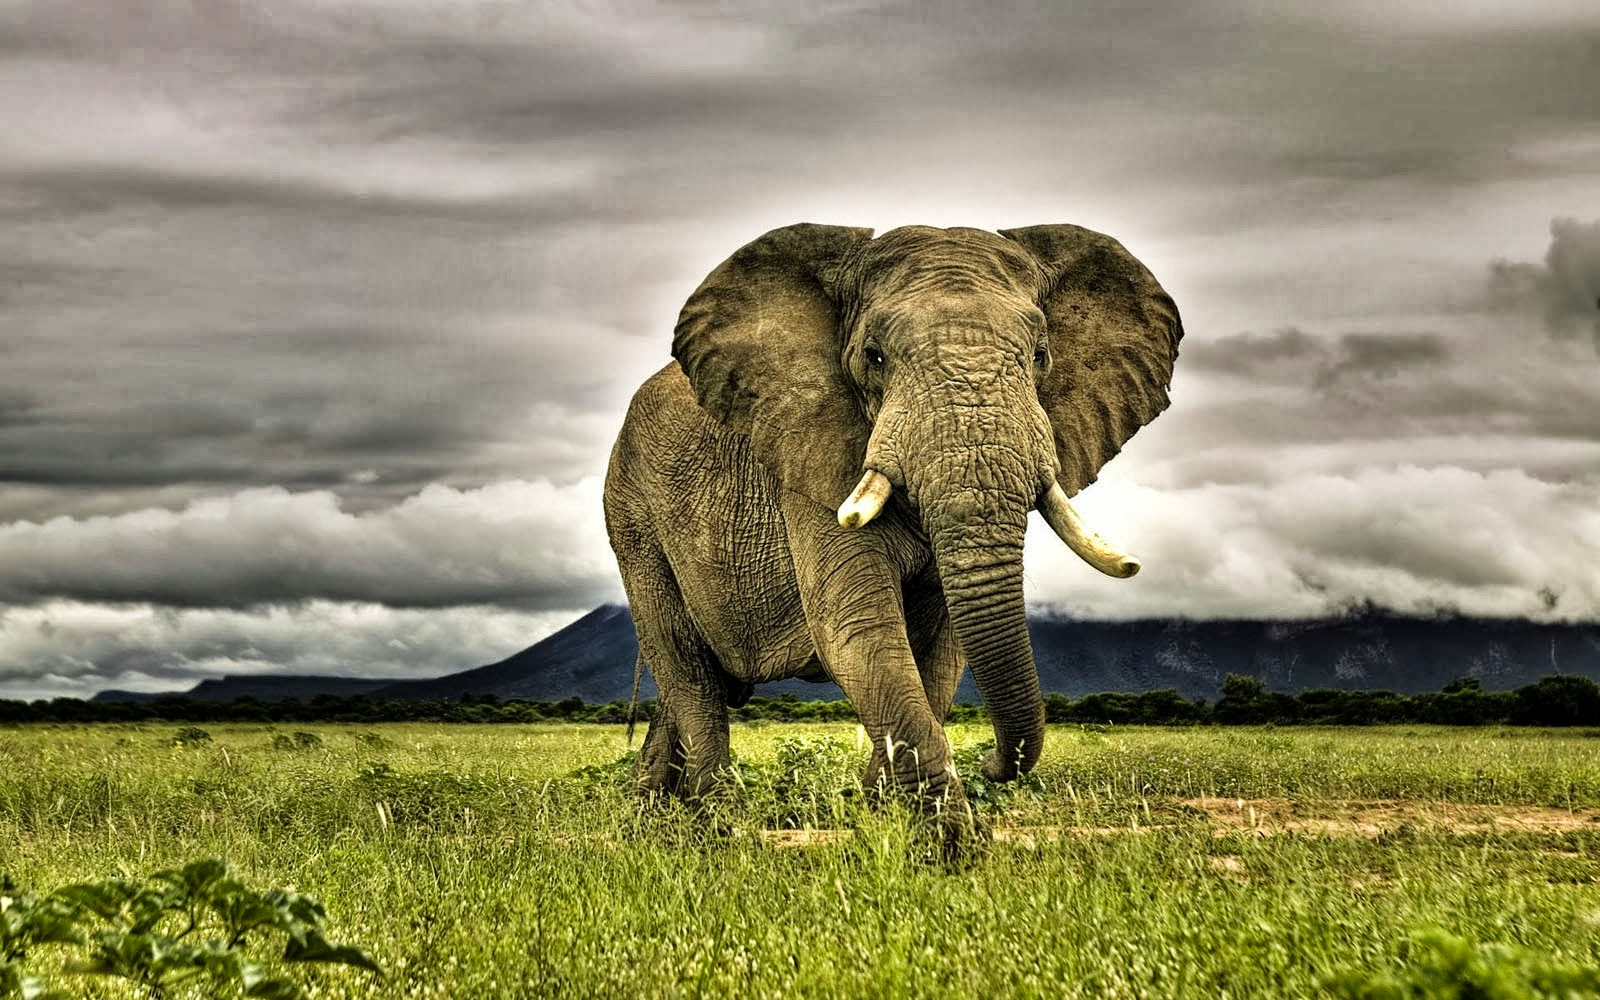 AFRICAN ELEPHANTS HD WALLPAPERS | FREE HD WALLPAPERS